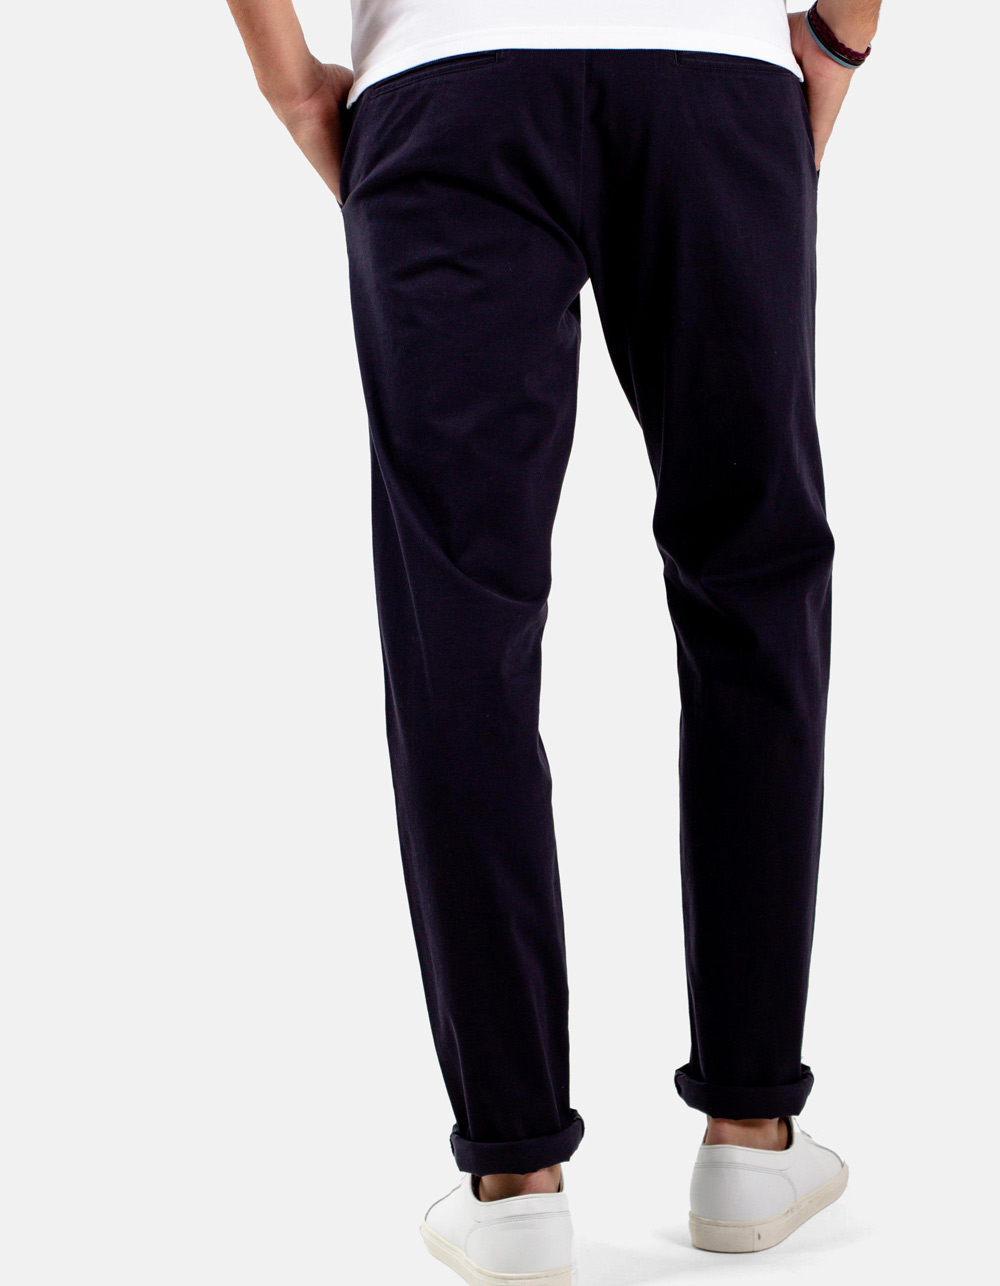 Basic chino dark navy trousers - Backside